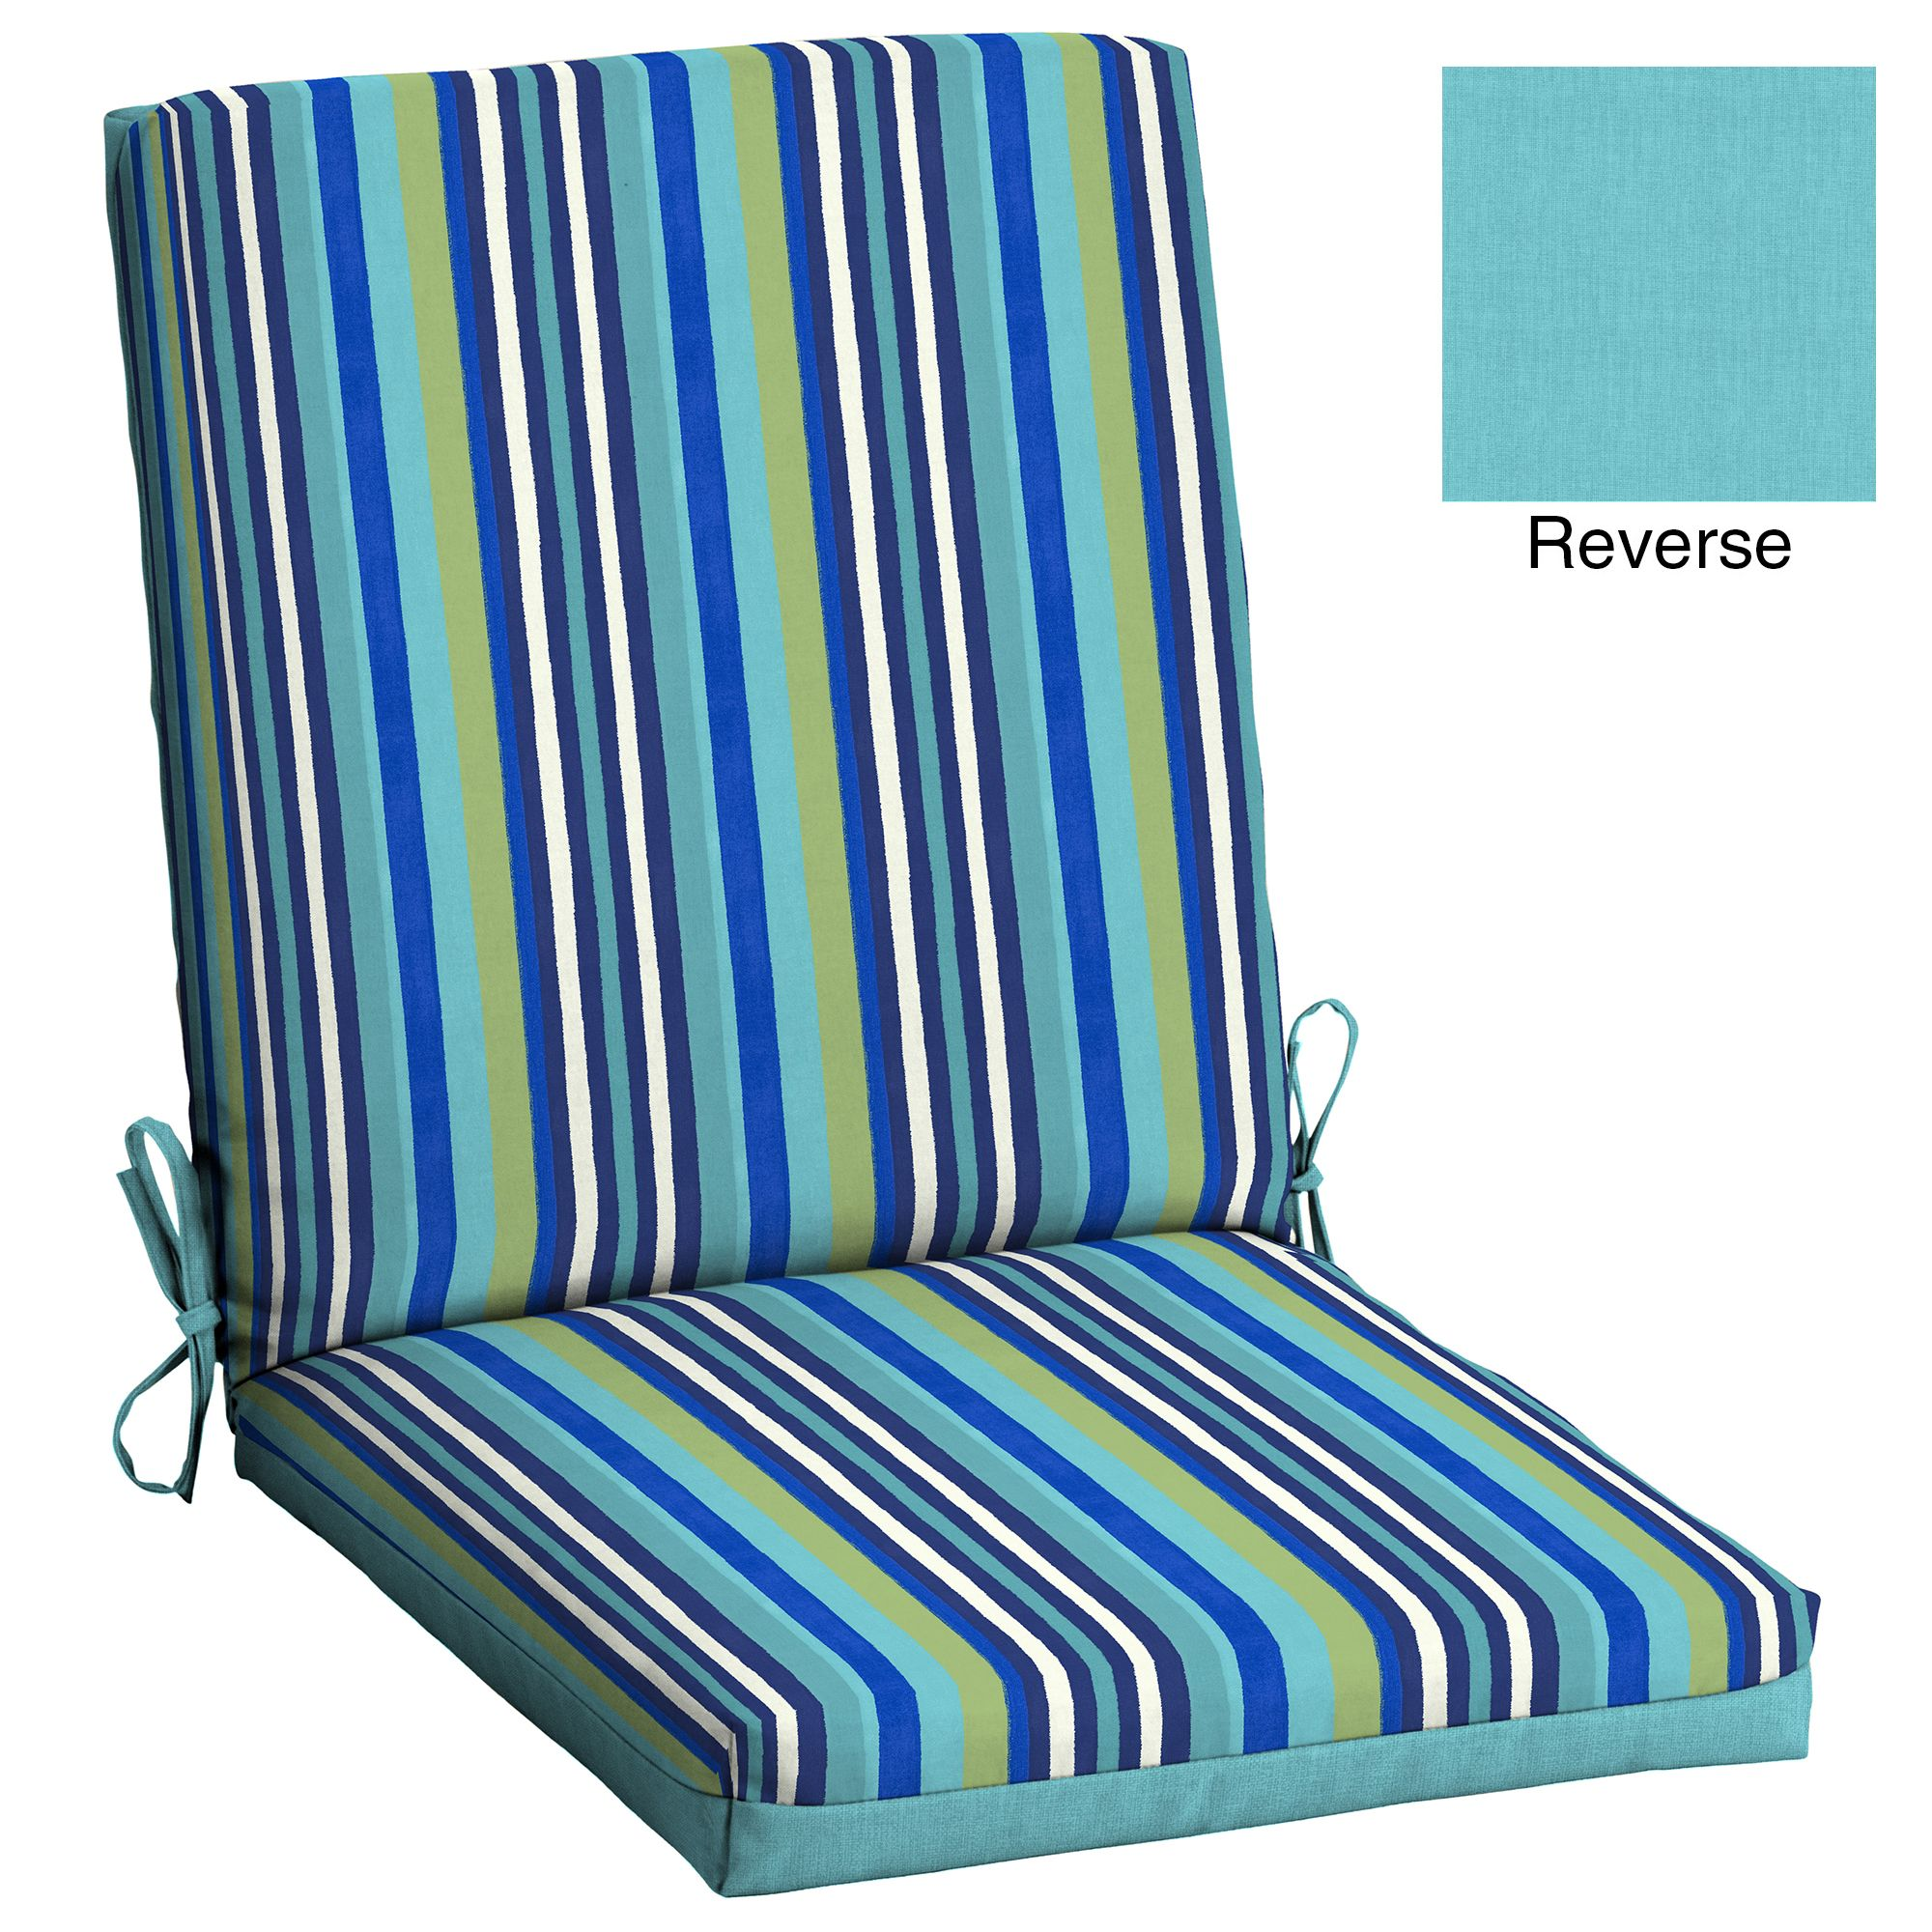 Mainstays Turquoise Stripe 1 Piece Outdoor Dining Chair